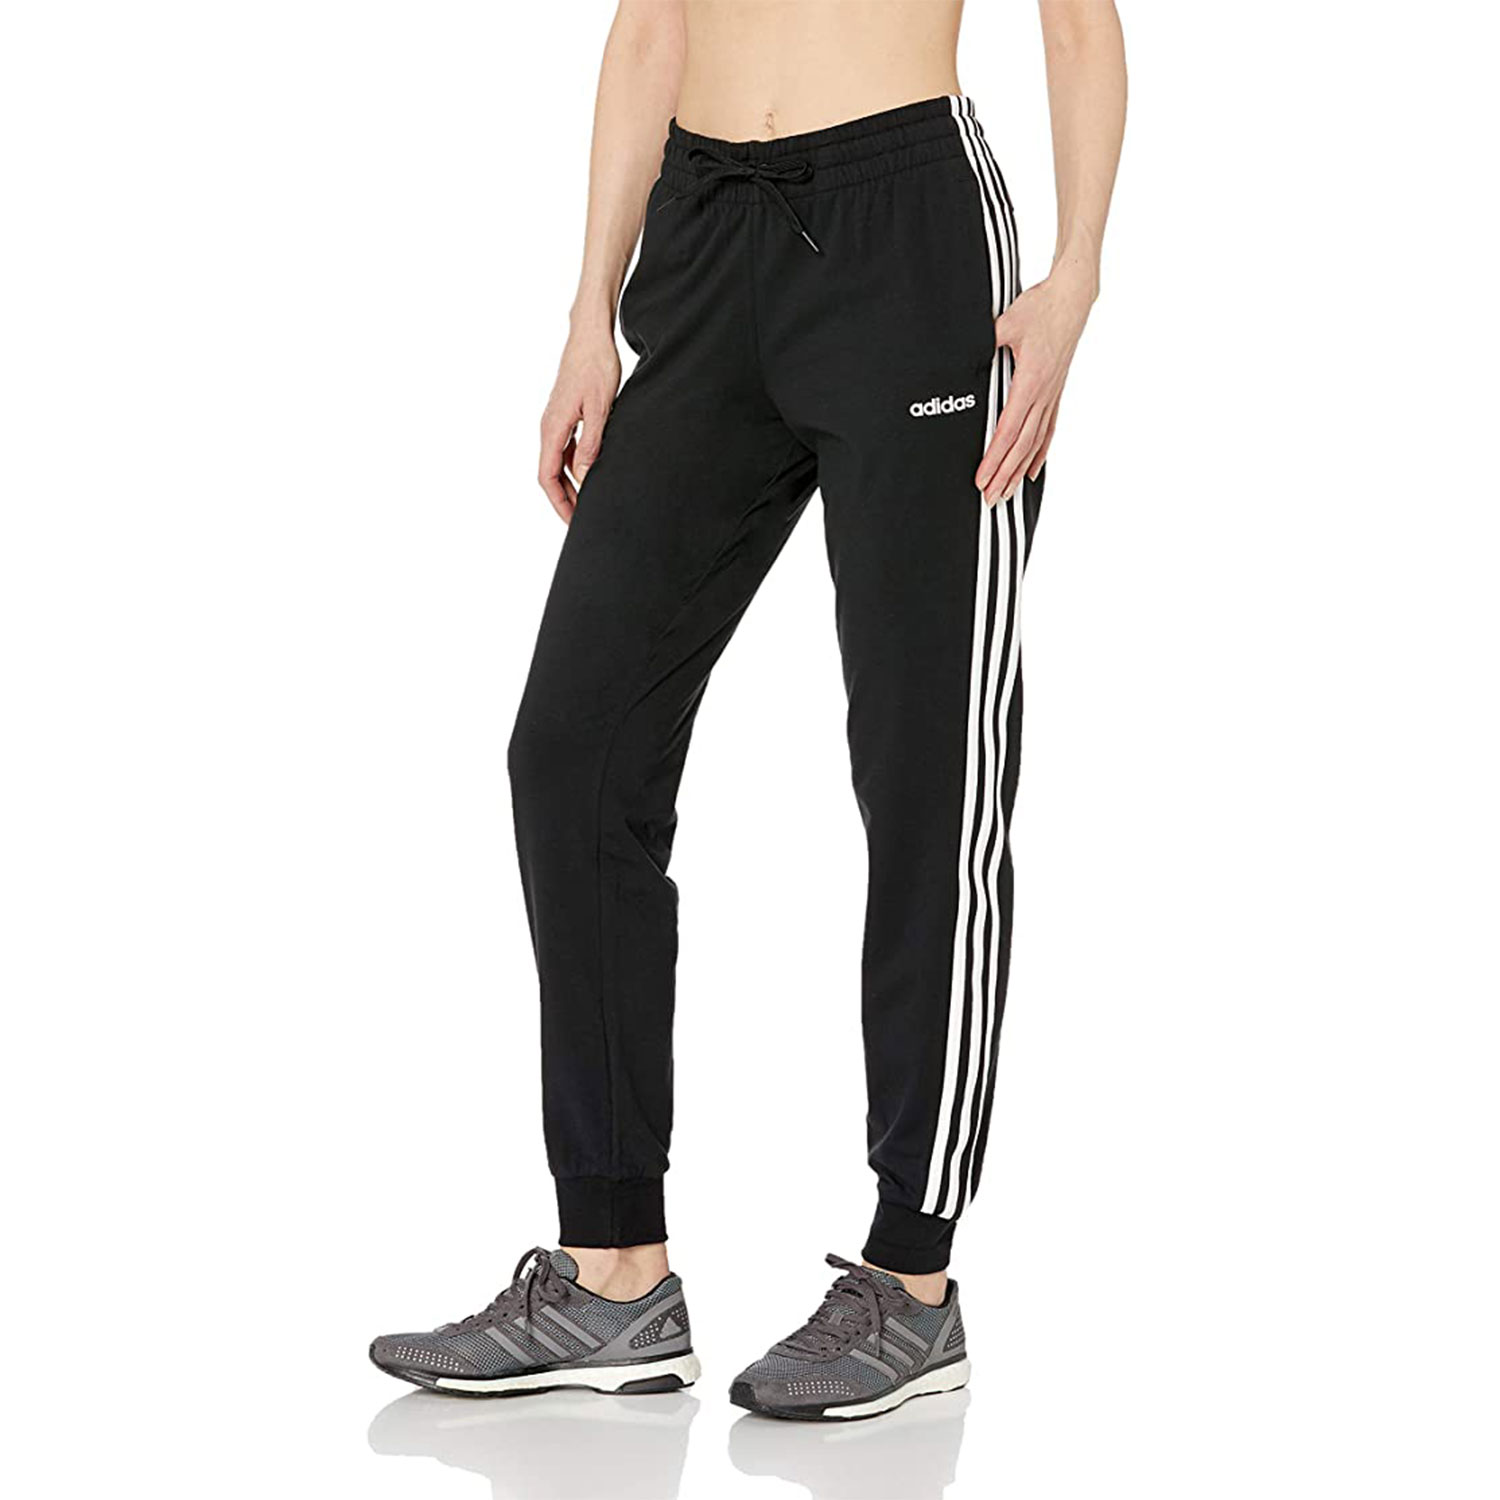 adidas women's essentials three stripes single jersey joggers